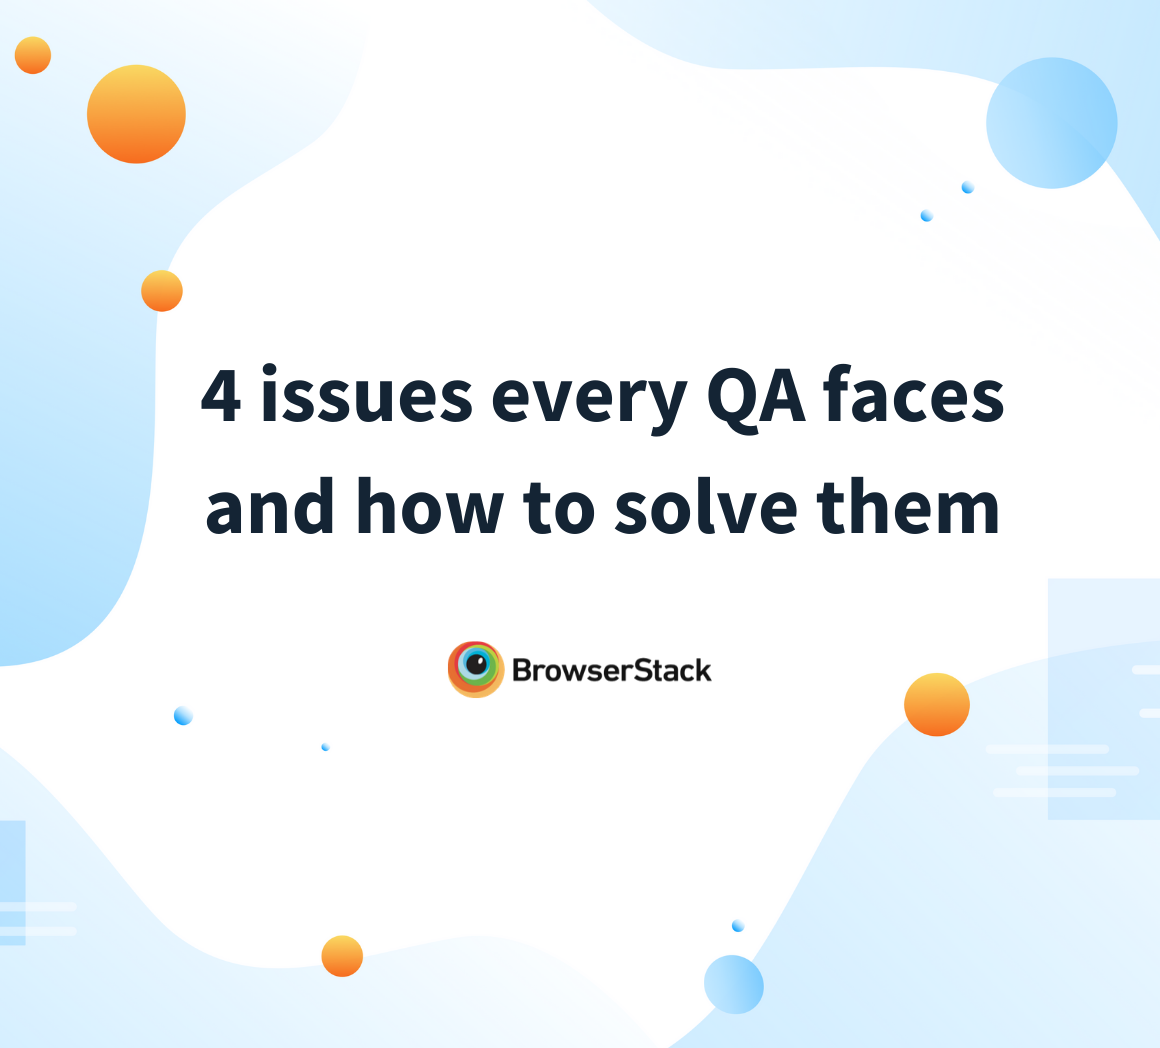 Common QA issues and how to solve them